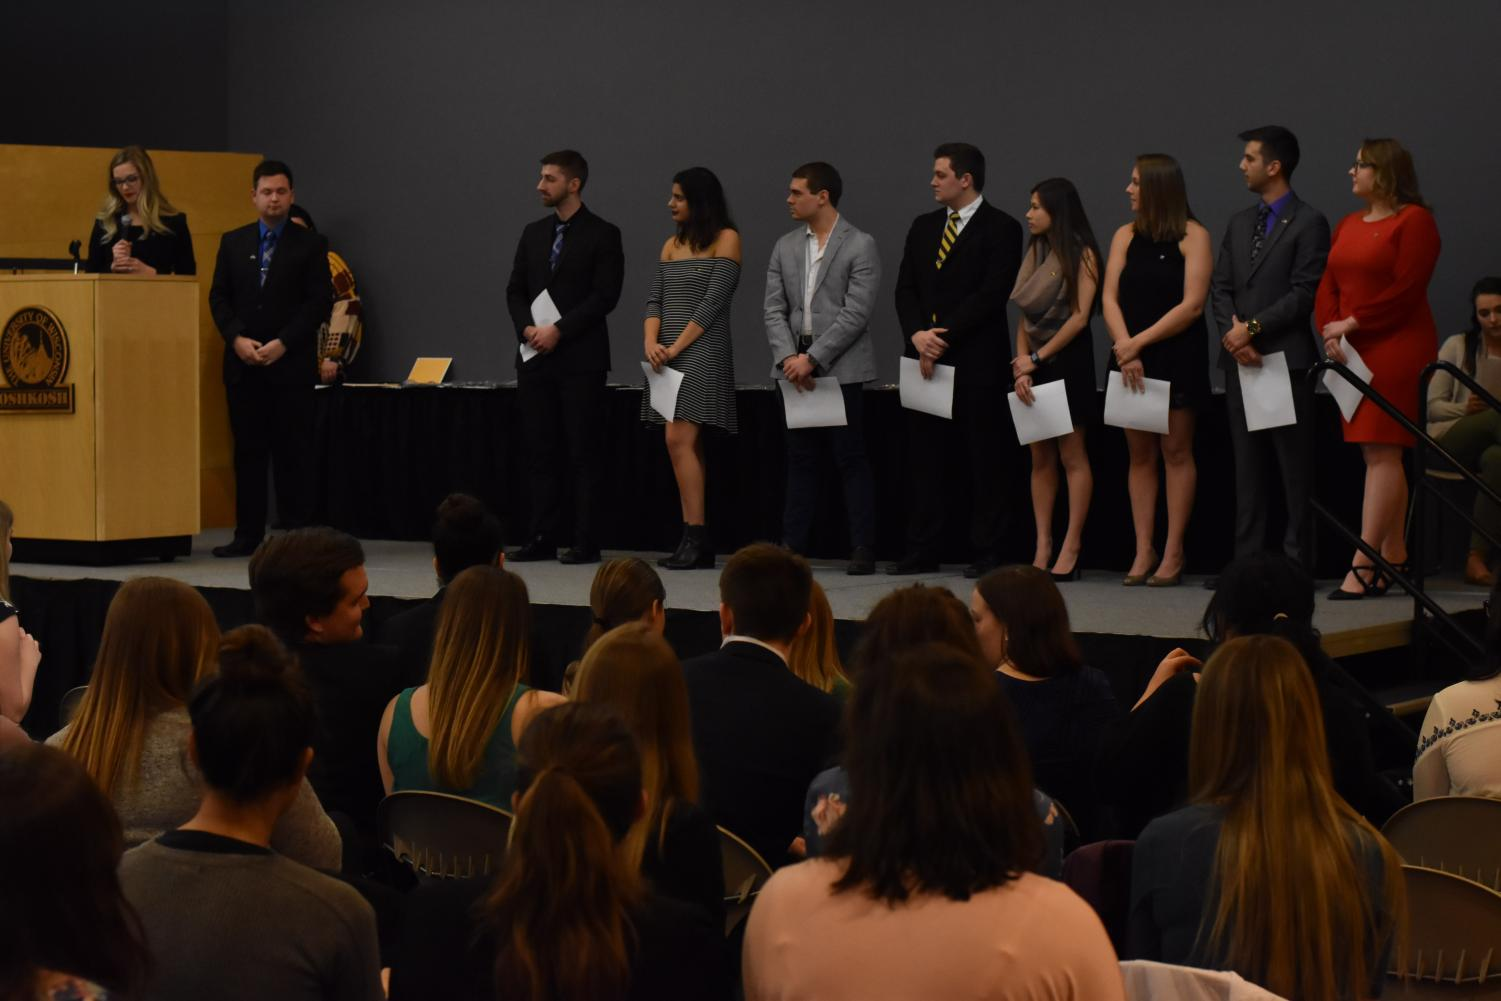 Members of UWO fraternities and sororities celebrate their accomplishments from the 2016-17 school year.